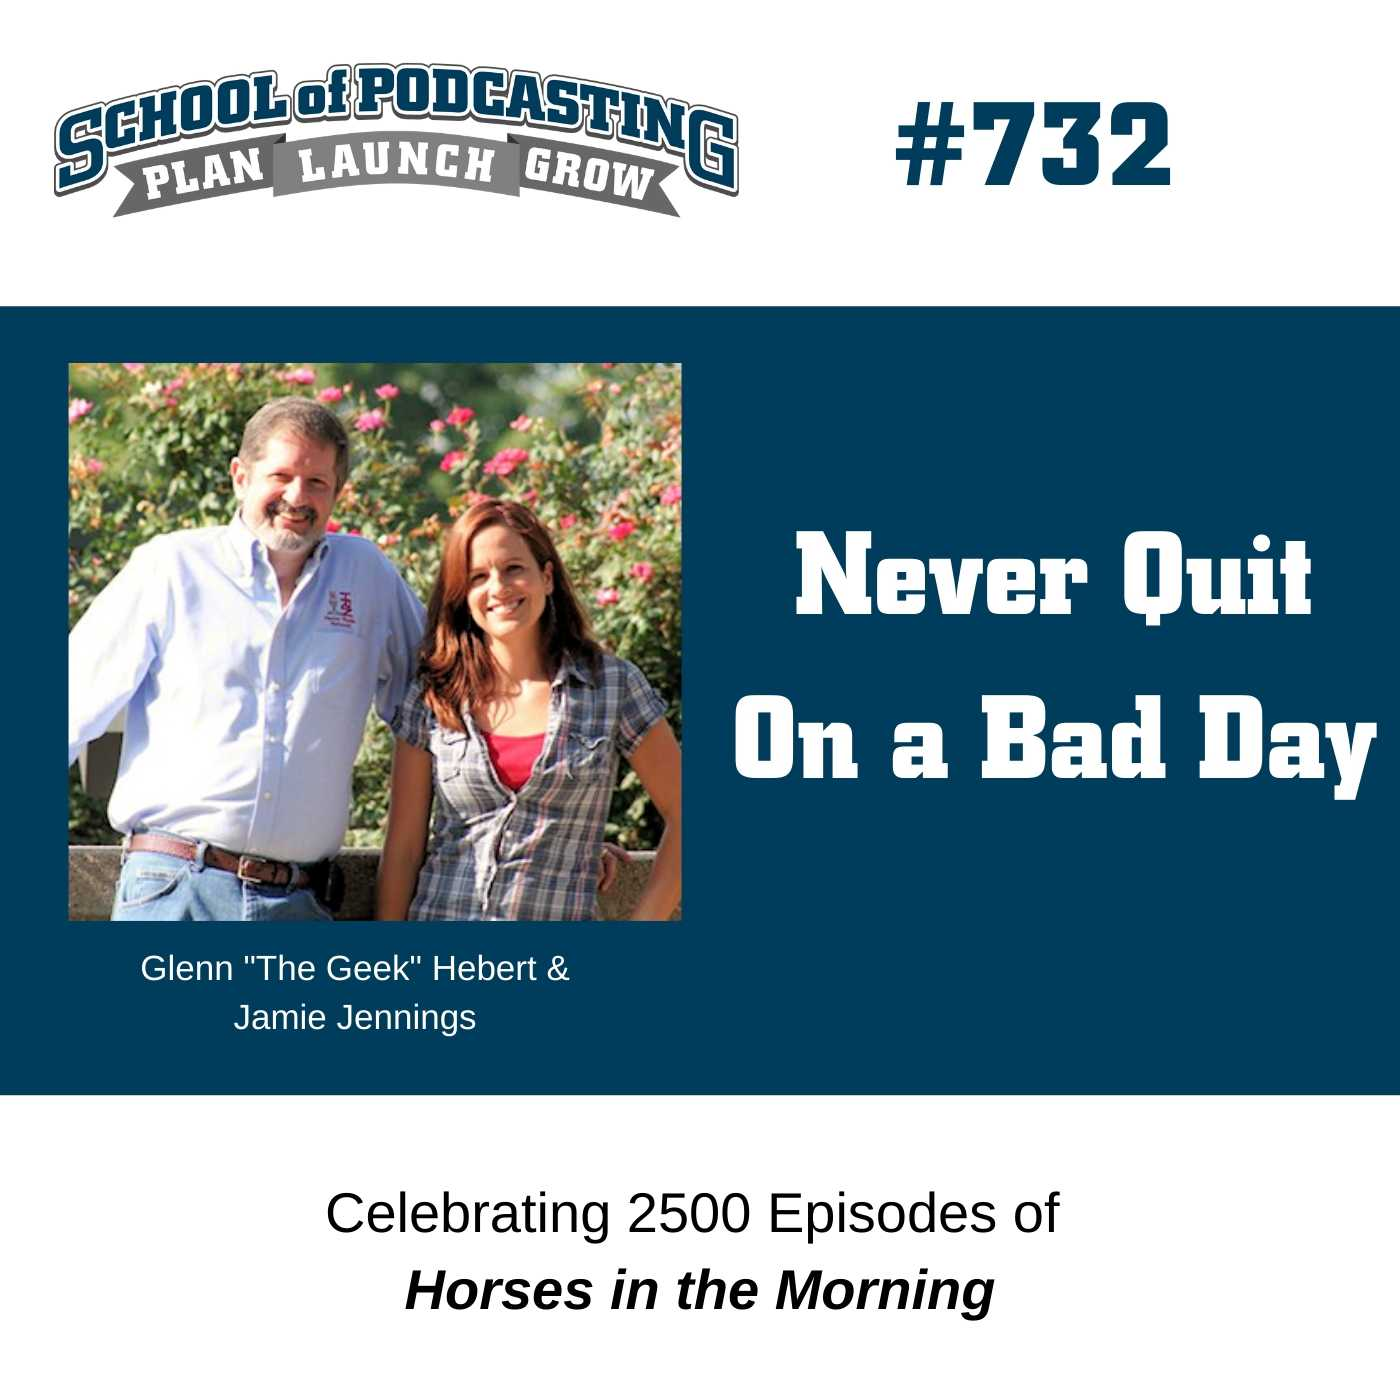 Don't Quit On a Bad Day - How Glenn and Jamie Thrive After 2500 Episodes